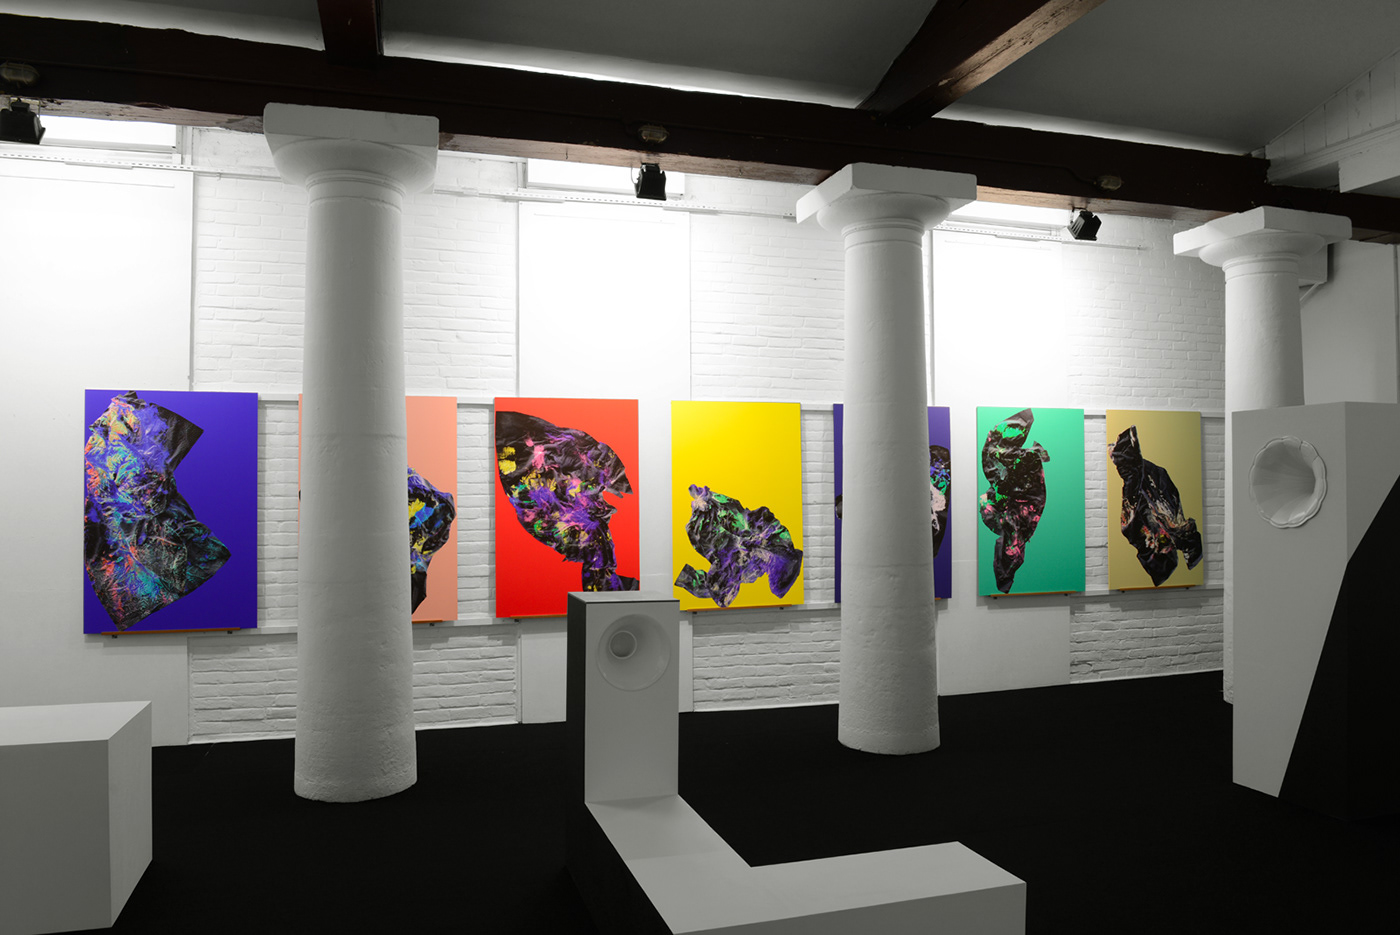 Installtion of seven digital paintings signed by two graphic designers